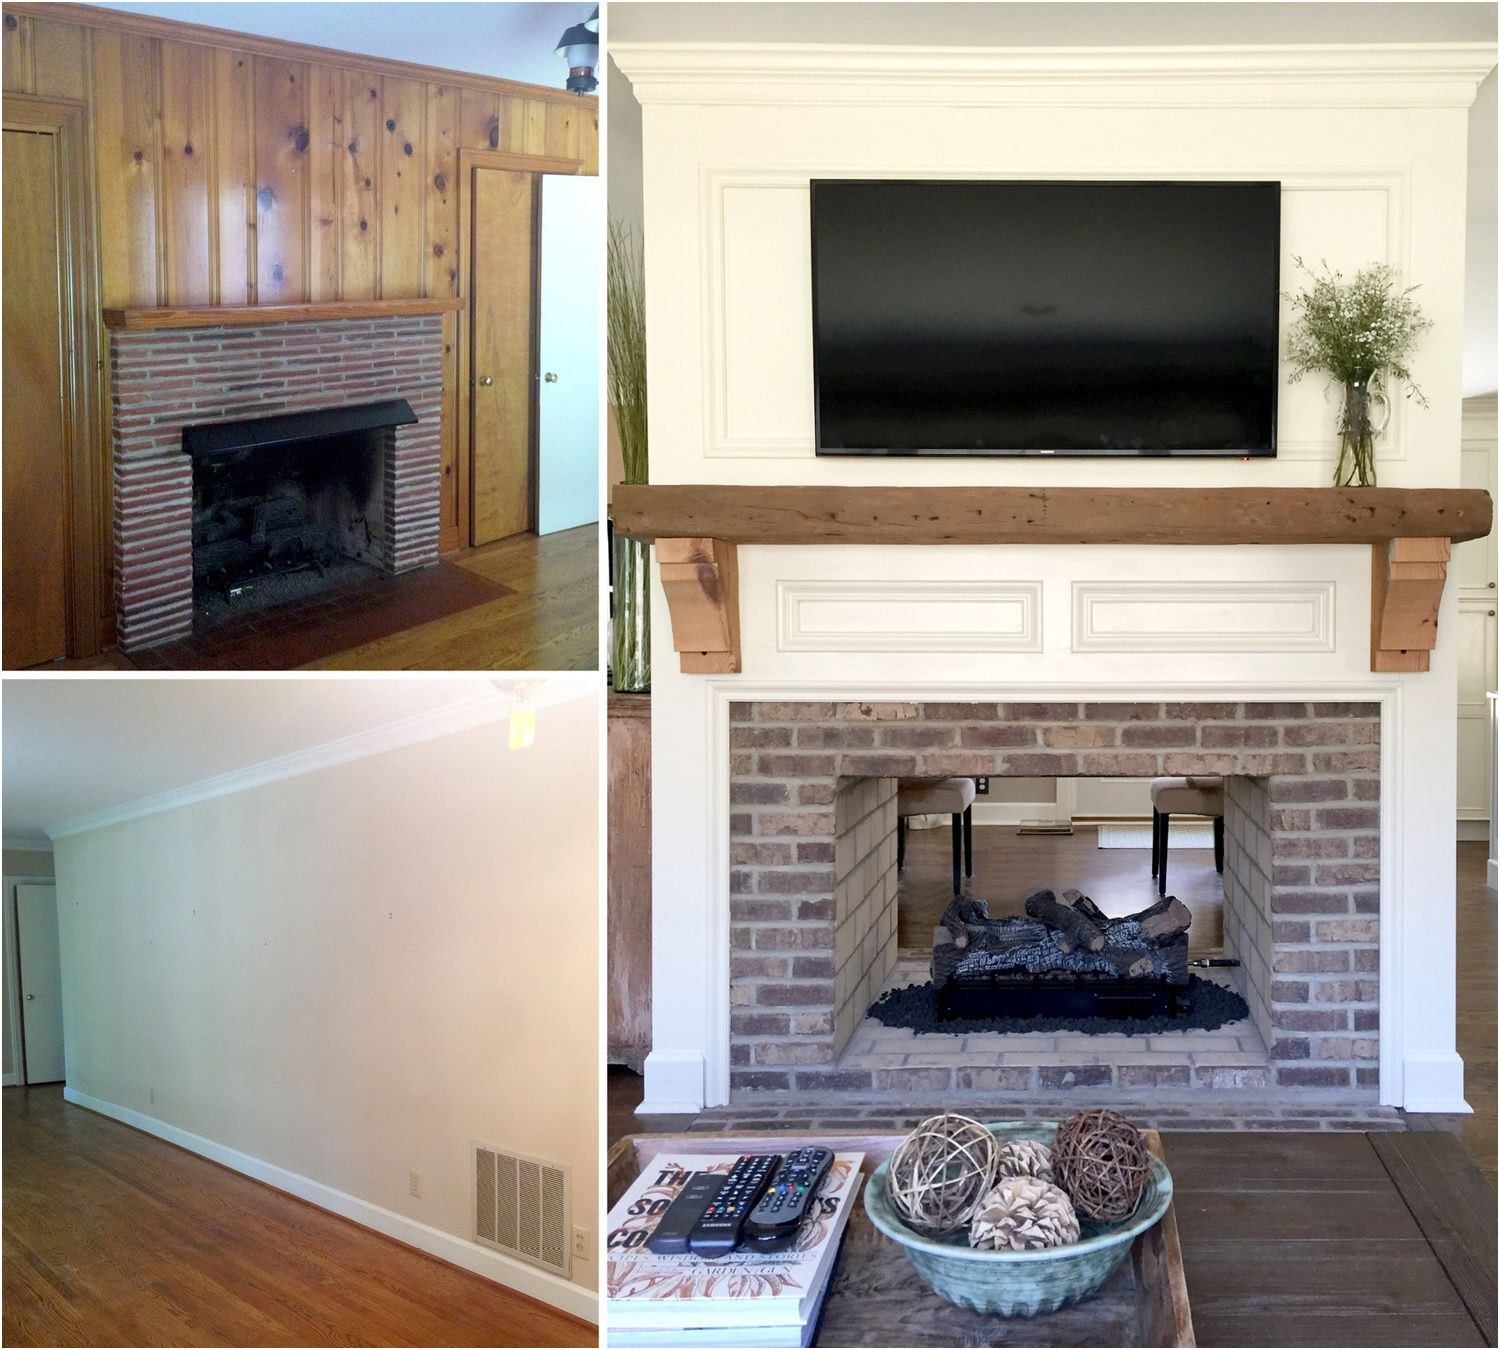 Remodel Fireplace Brick Best Of Fireplace Renovation Converting A Single Sided Fireplace to